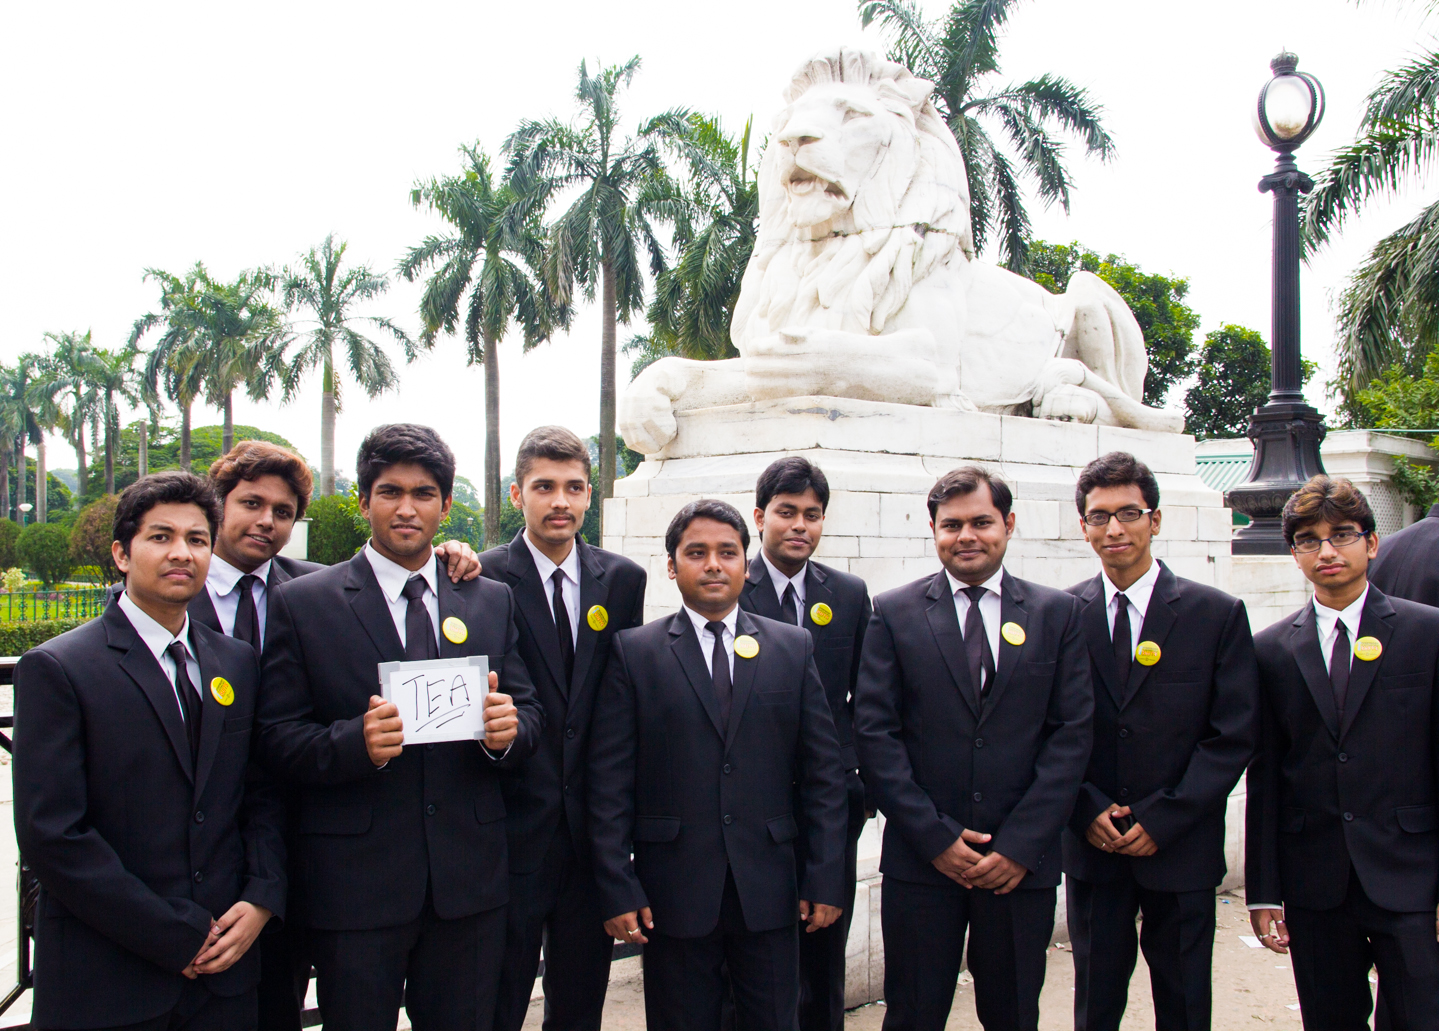 Swaraj and his friends donned suits to promote Suits, a TV series about an American law firm, outside Kolkata's Victoria Memorial Hall. Where British officers once sipped tea from fine china, today most Kolkatans drink their chai in clay cups.